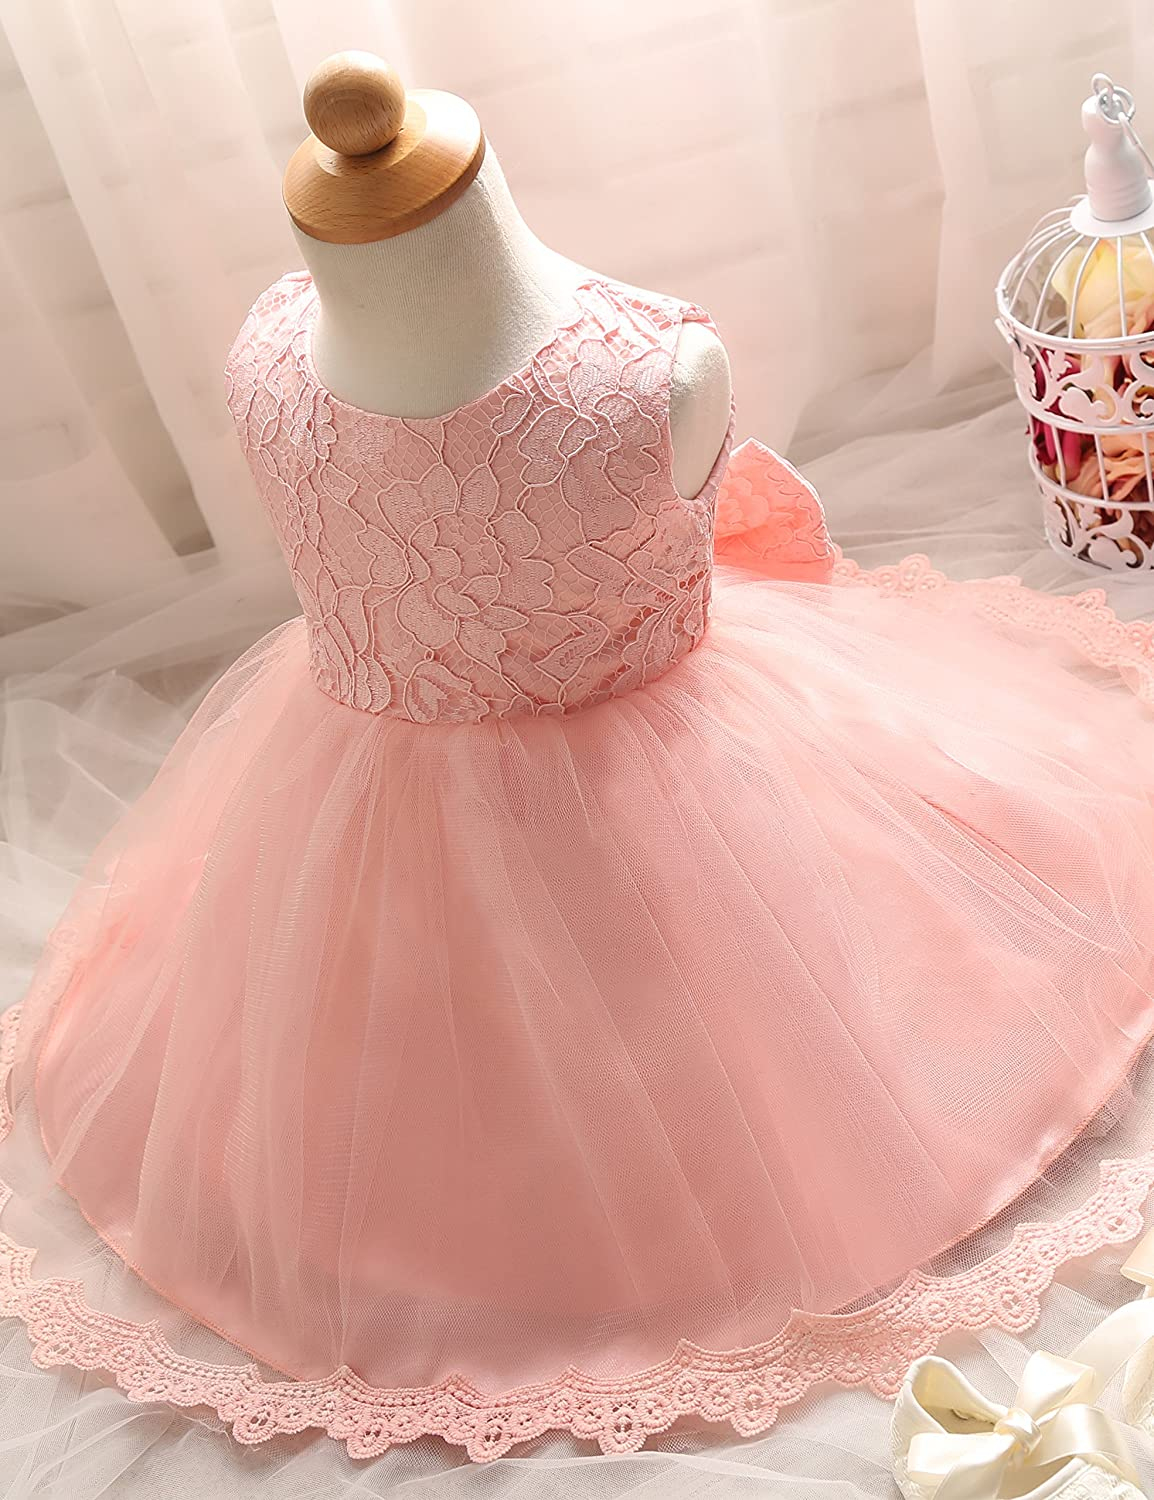 Amazon.com  NNJXD Girls  Tulle Flower Princess Wedding Dress for Toddler  and Baby Girl  Clothing f99973a7e67f